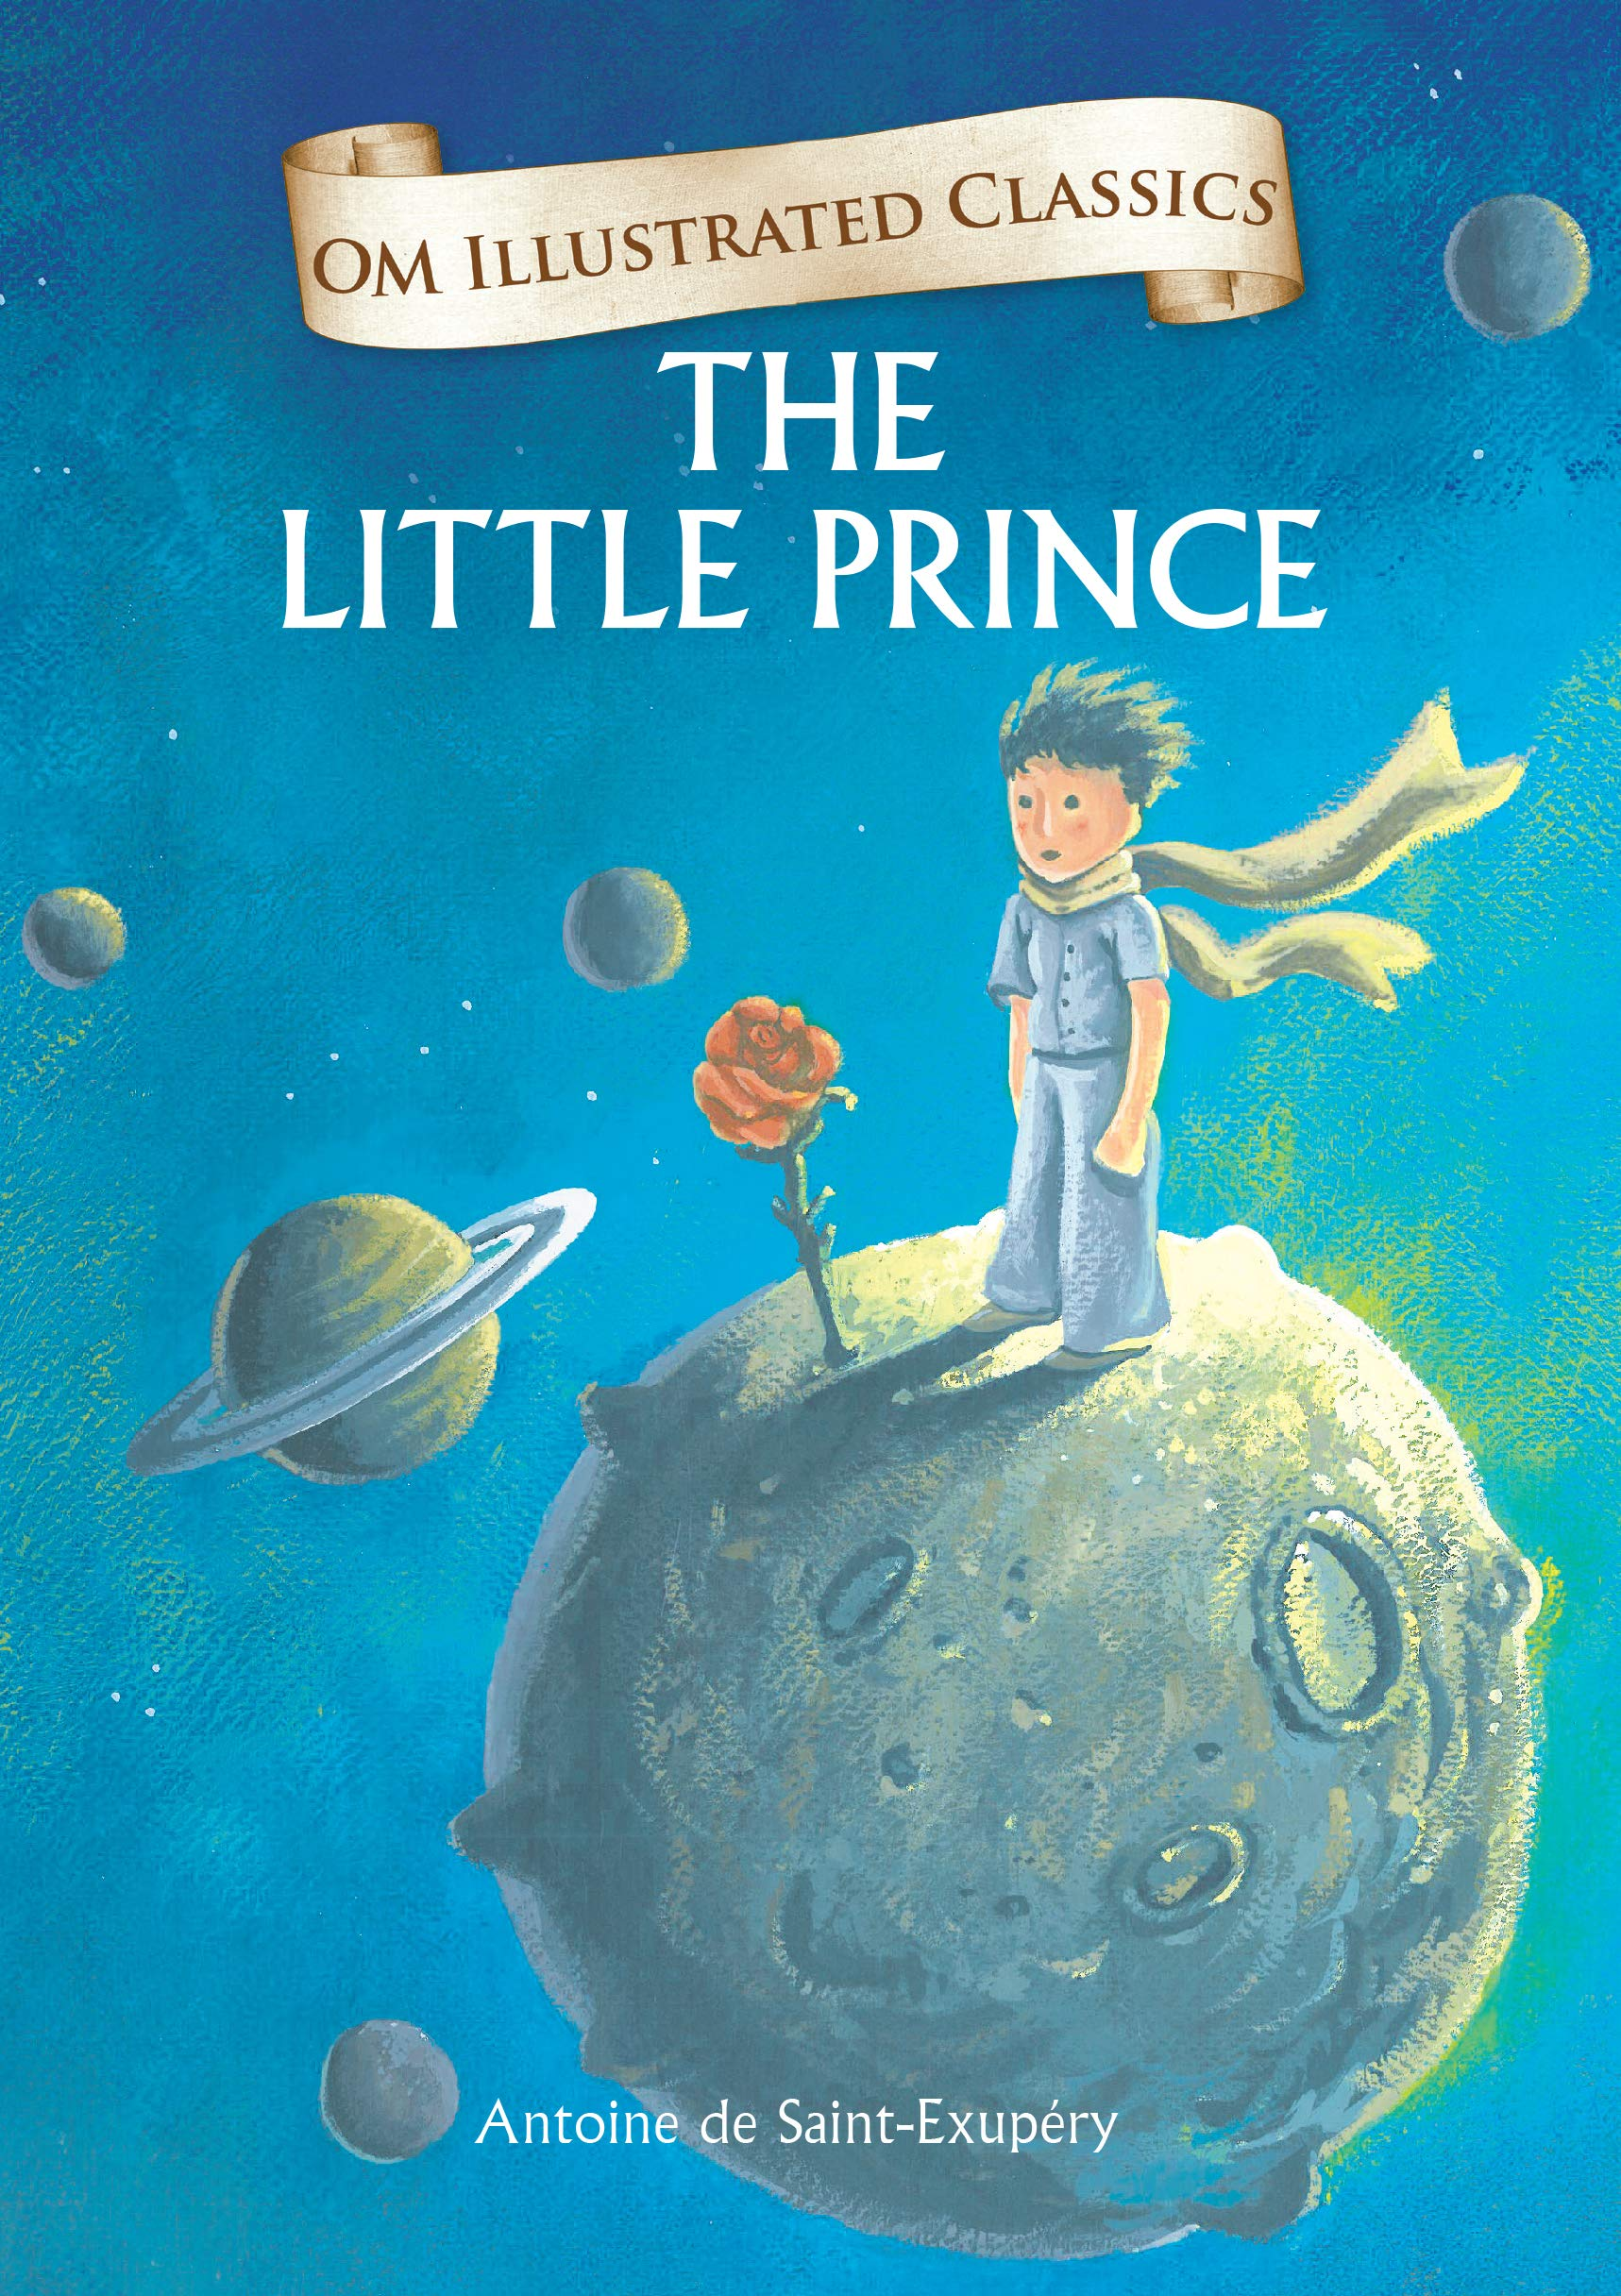 The Little Prince : Illustrated abridged Classics (Om Illustrated Classics)